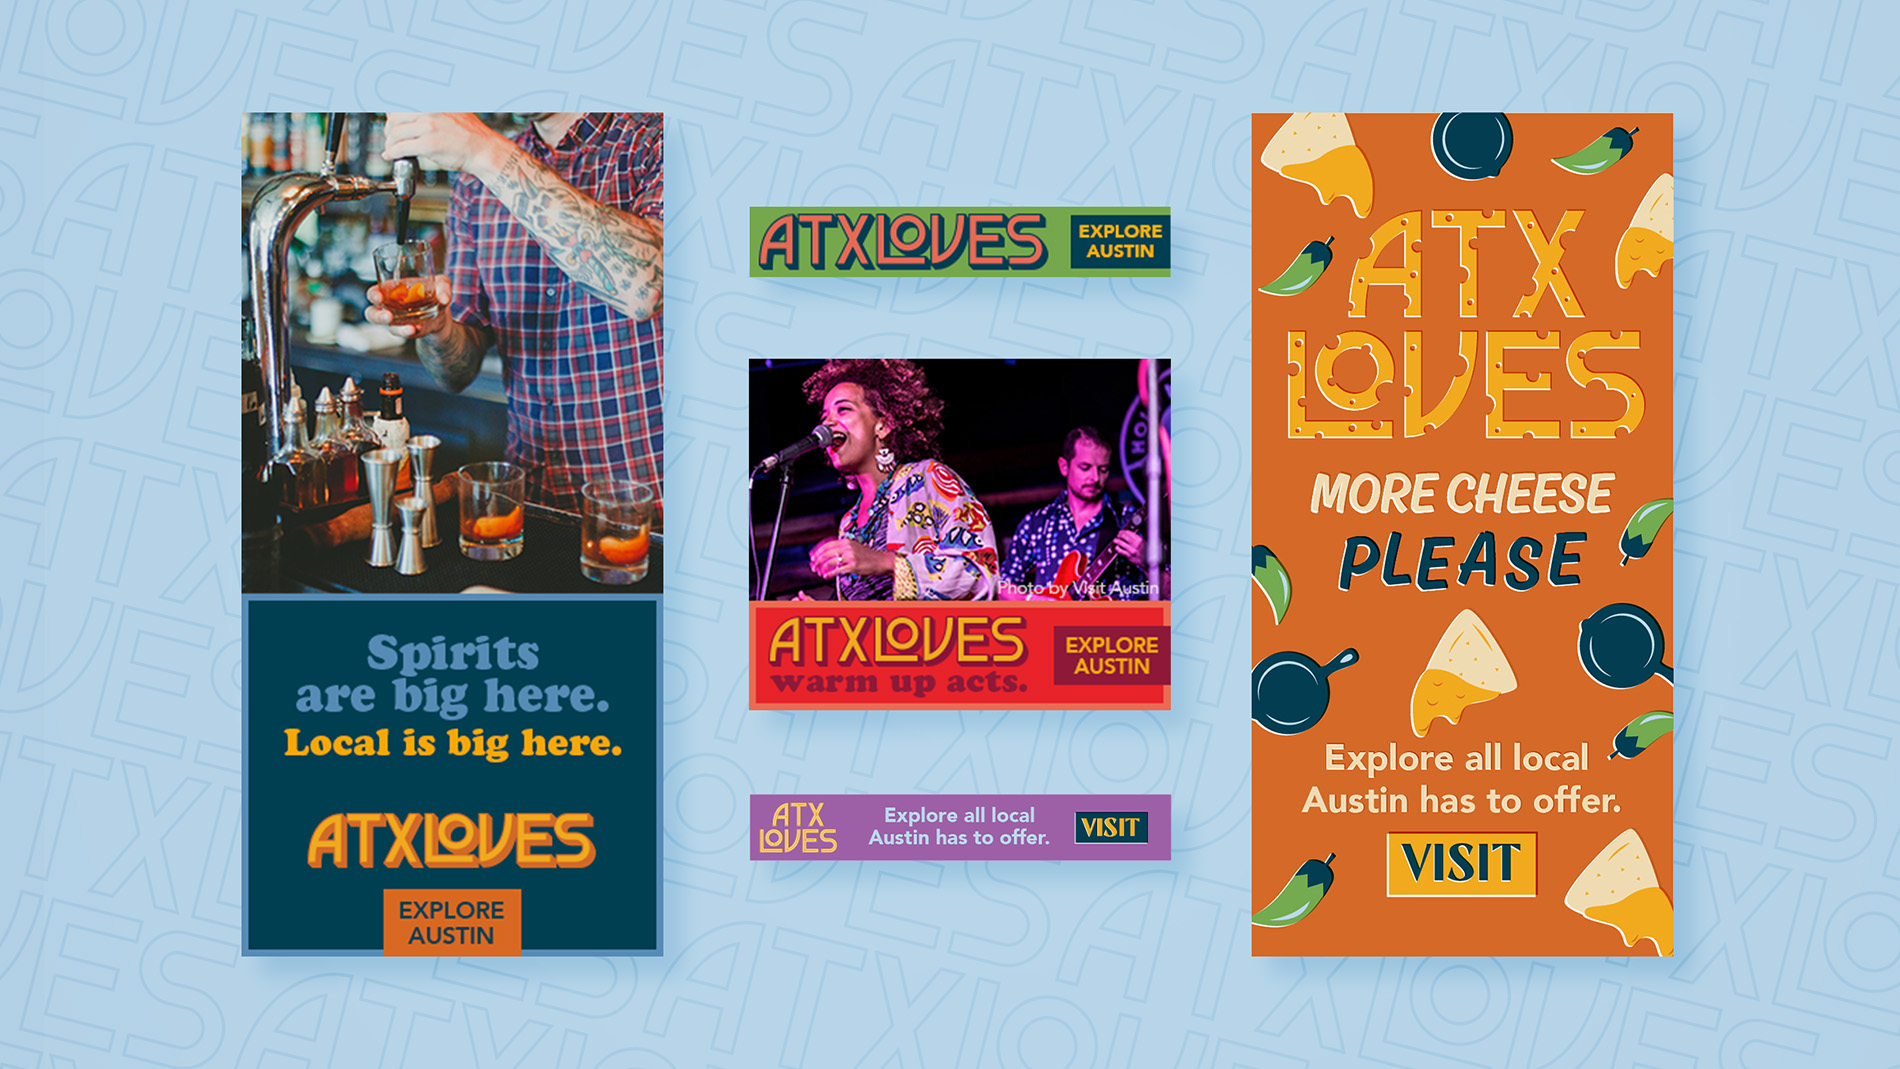 """A series of digital ads for ATXLoves that include slogans like """"Spirits are big here"""" and """"More cheese please."""""""